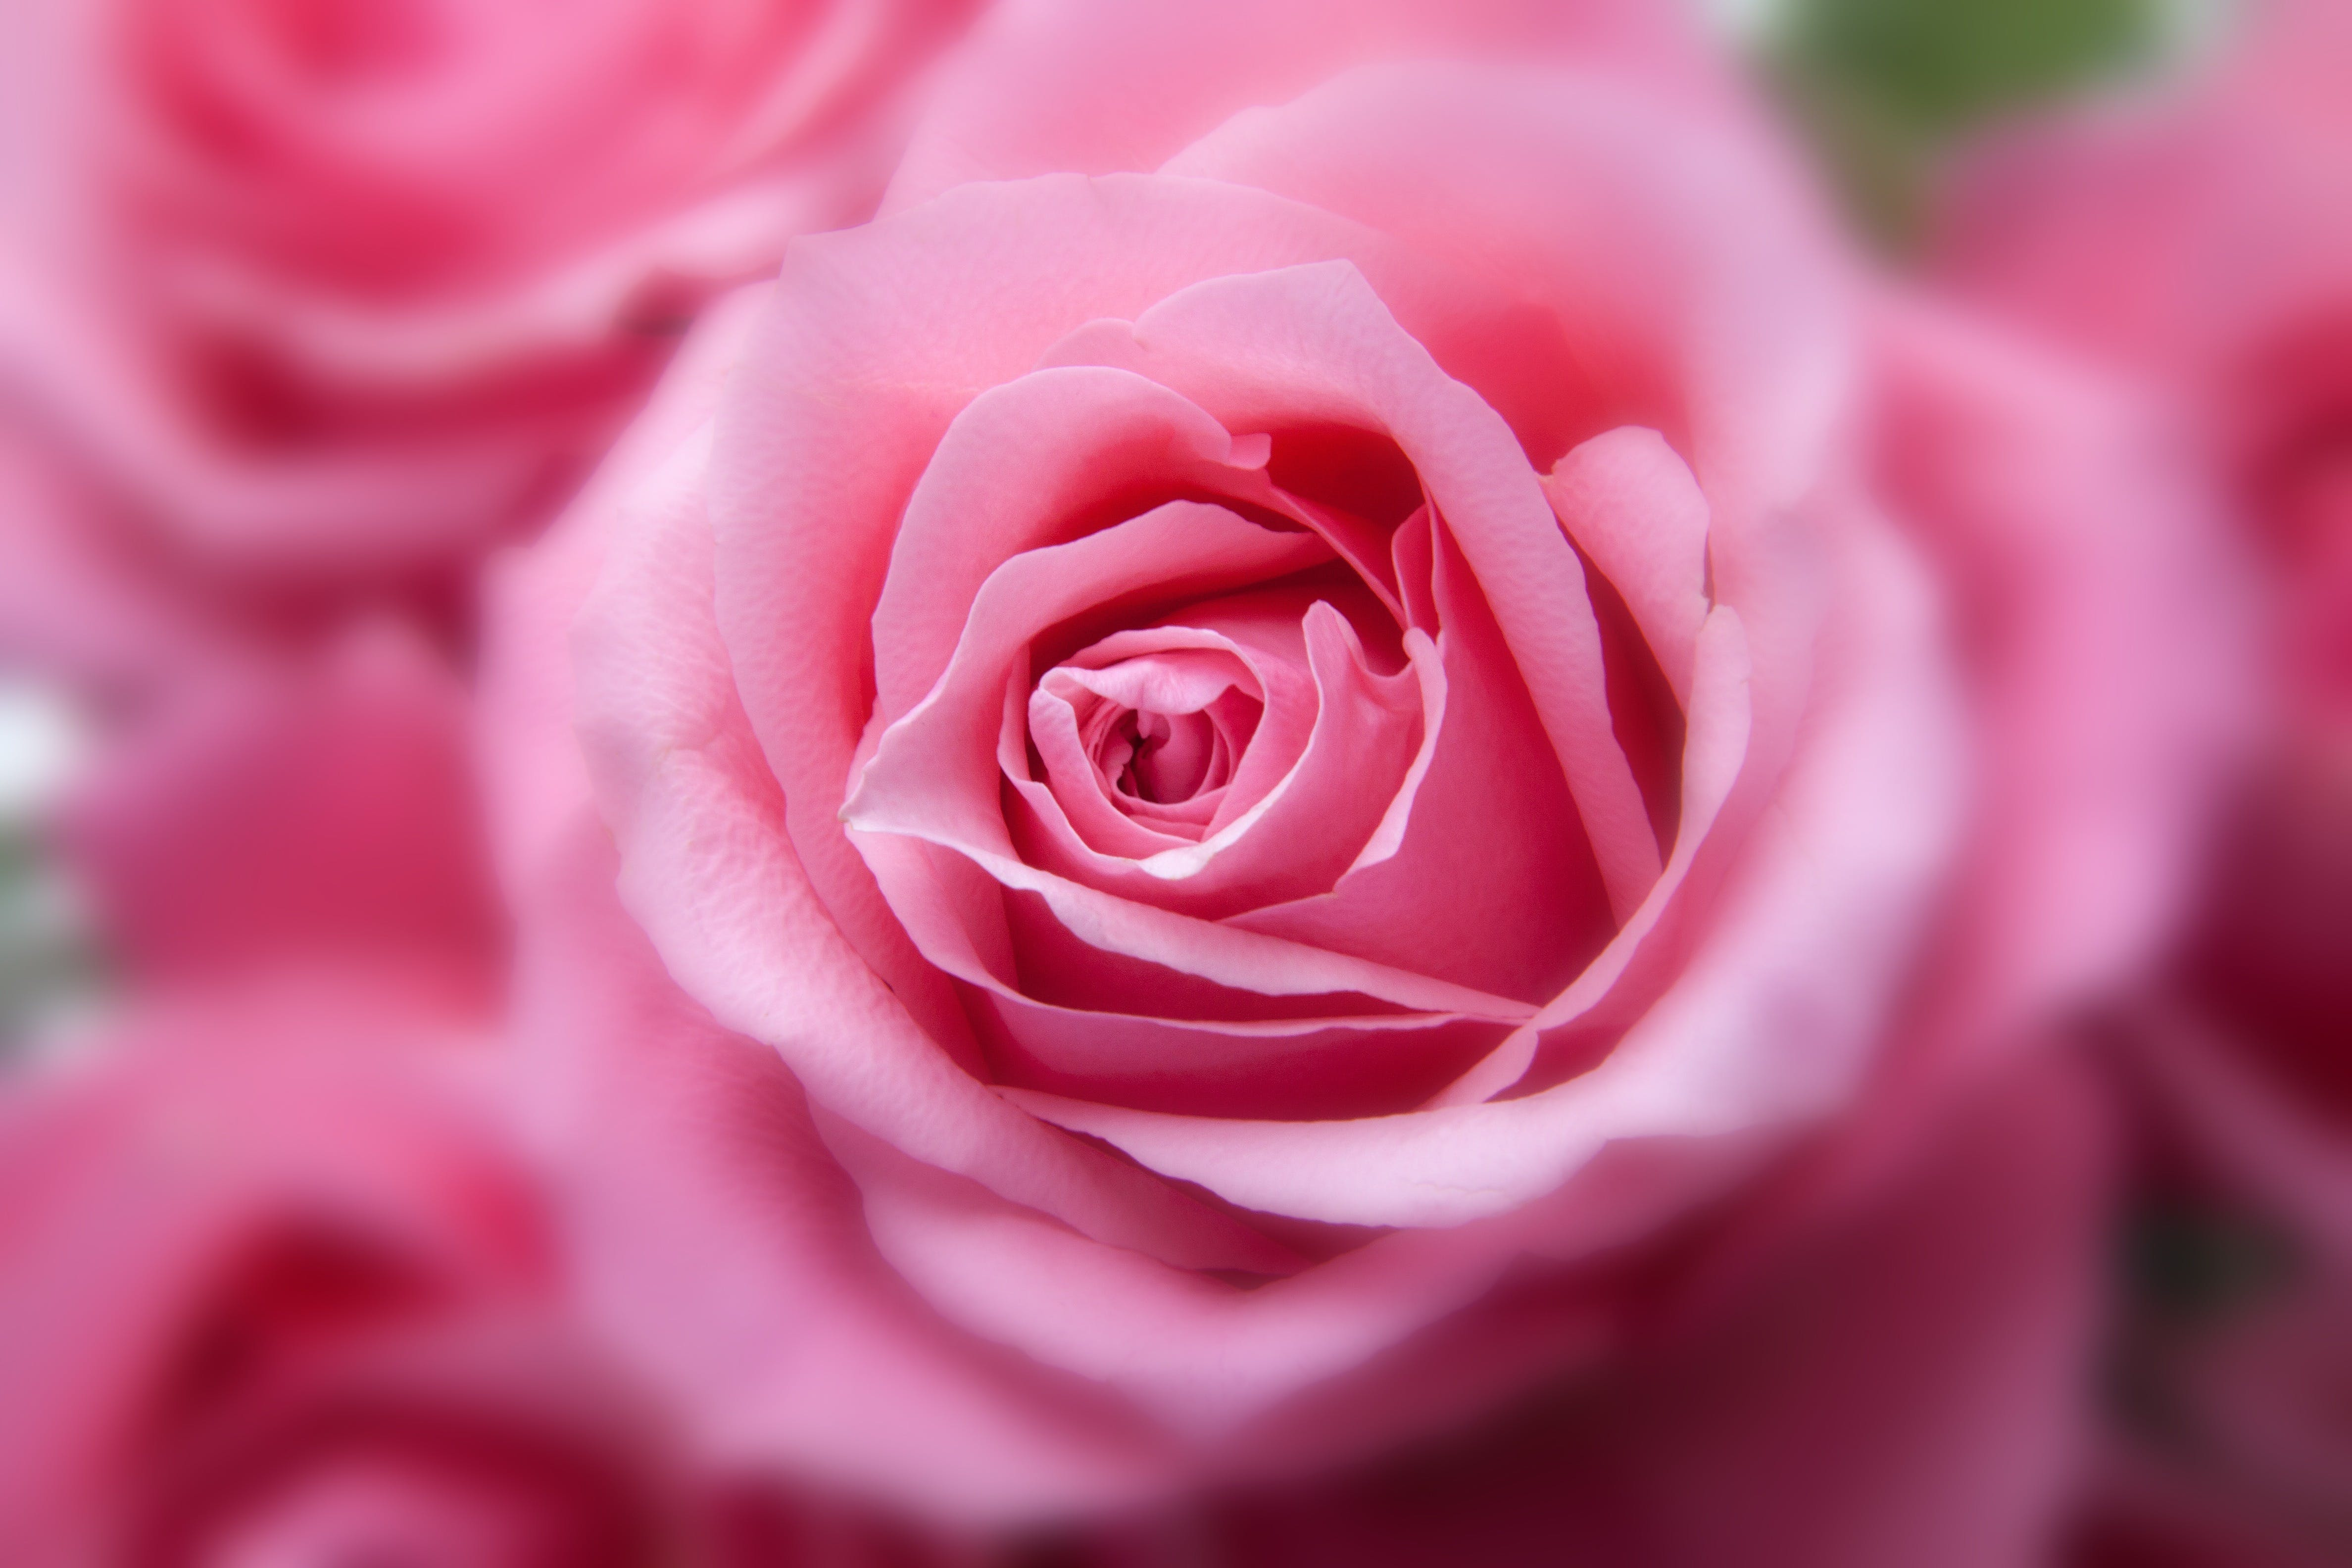 Pink Rose in Close Up View Image